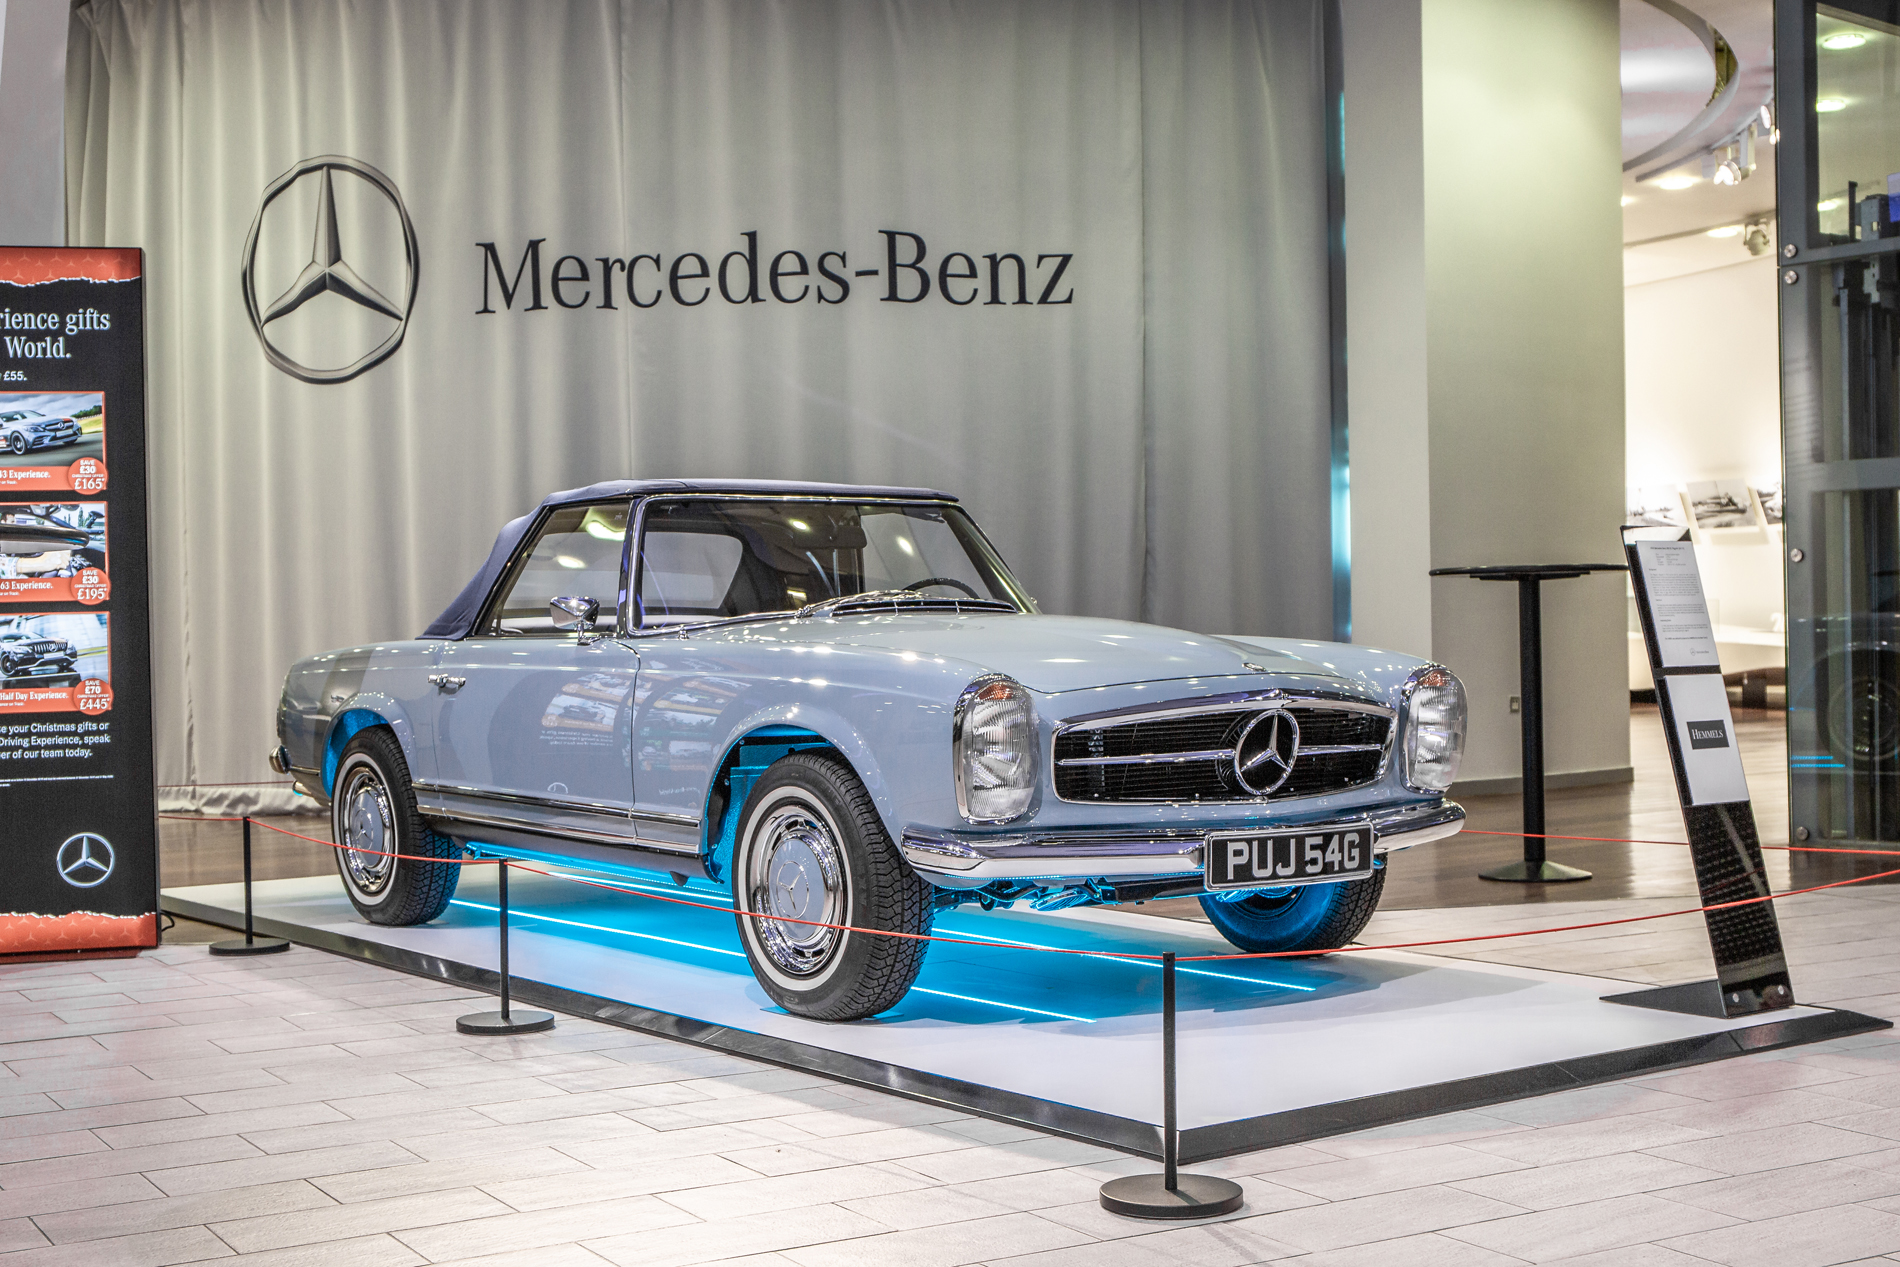 MetallicHemmels W113 280SL Pagoda in Horizon Blue at  Mercedes-Benz World, UK  3